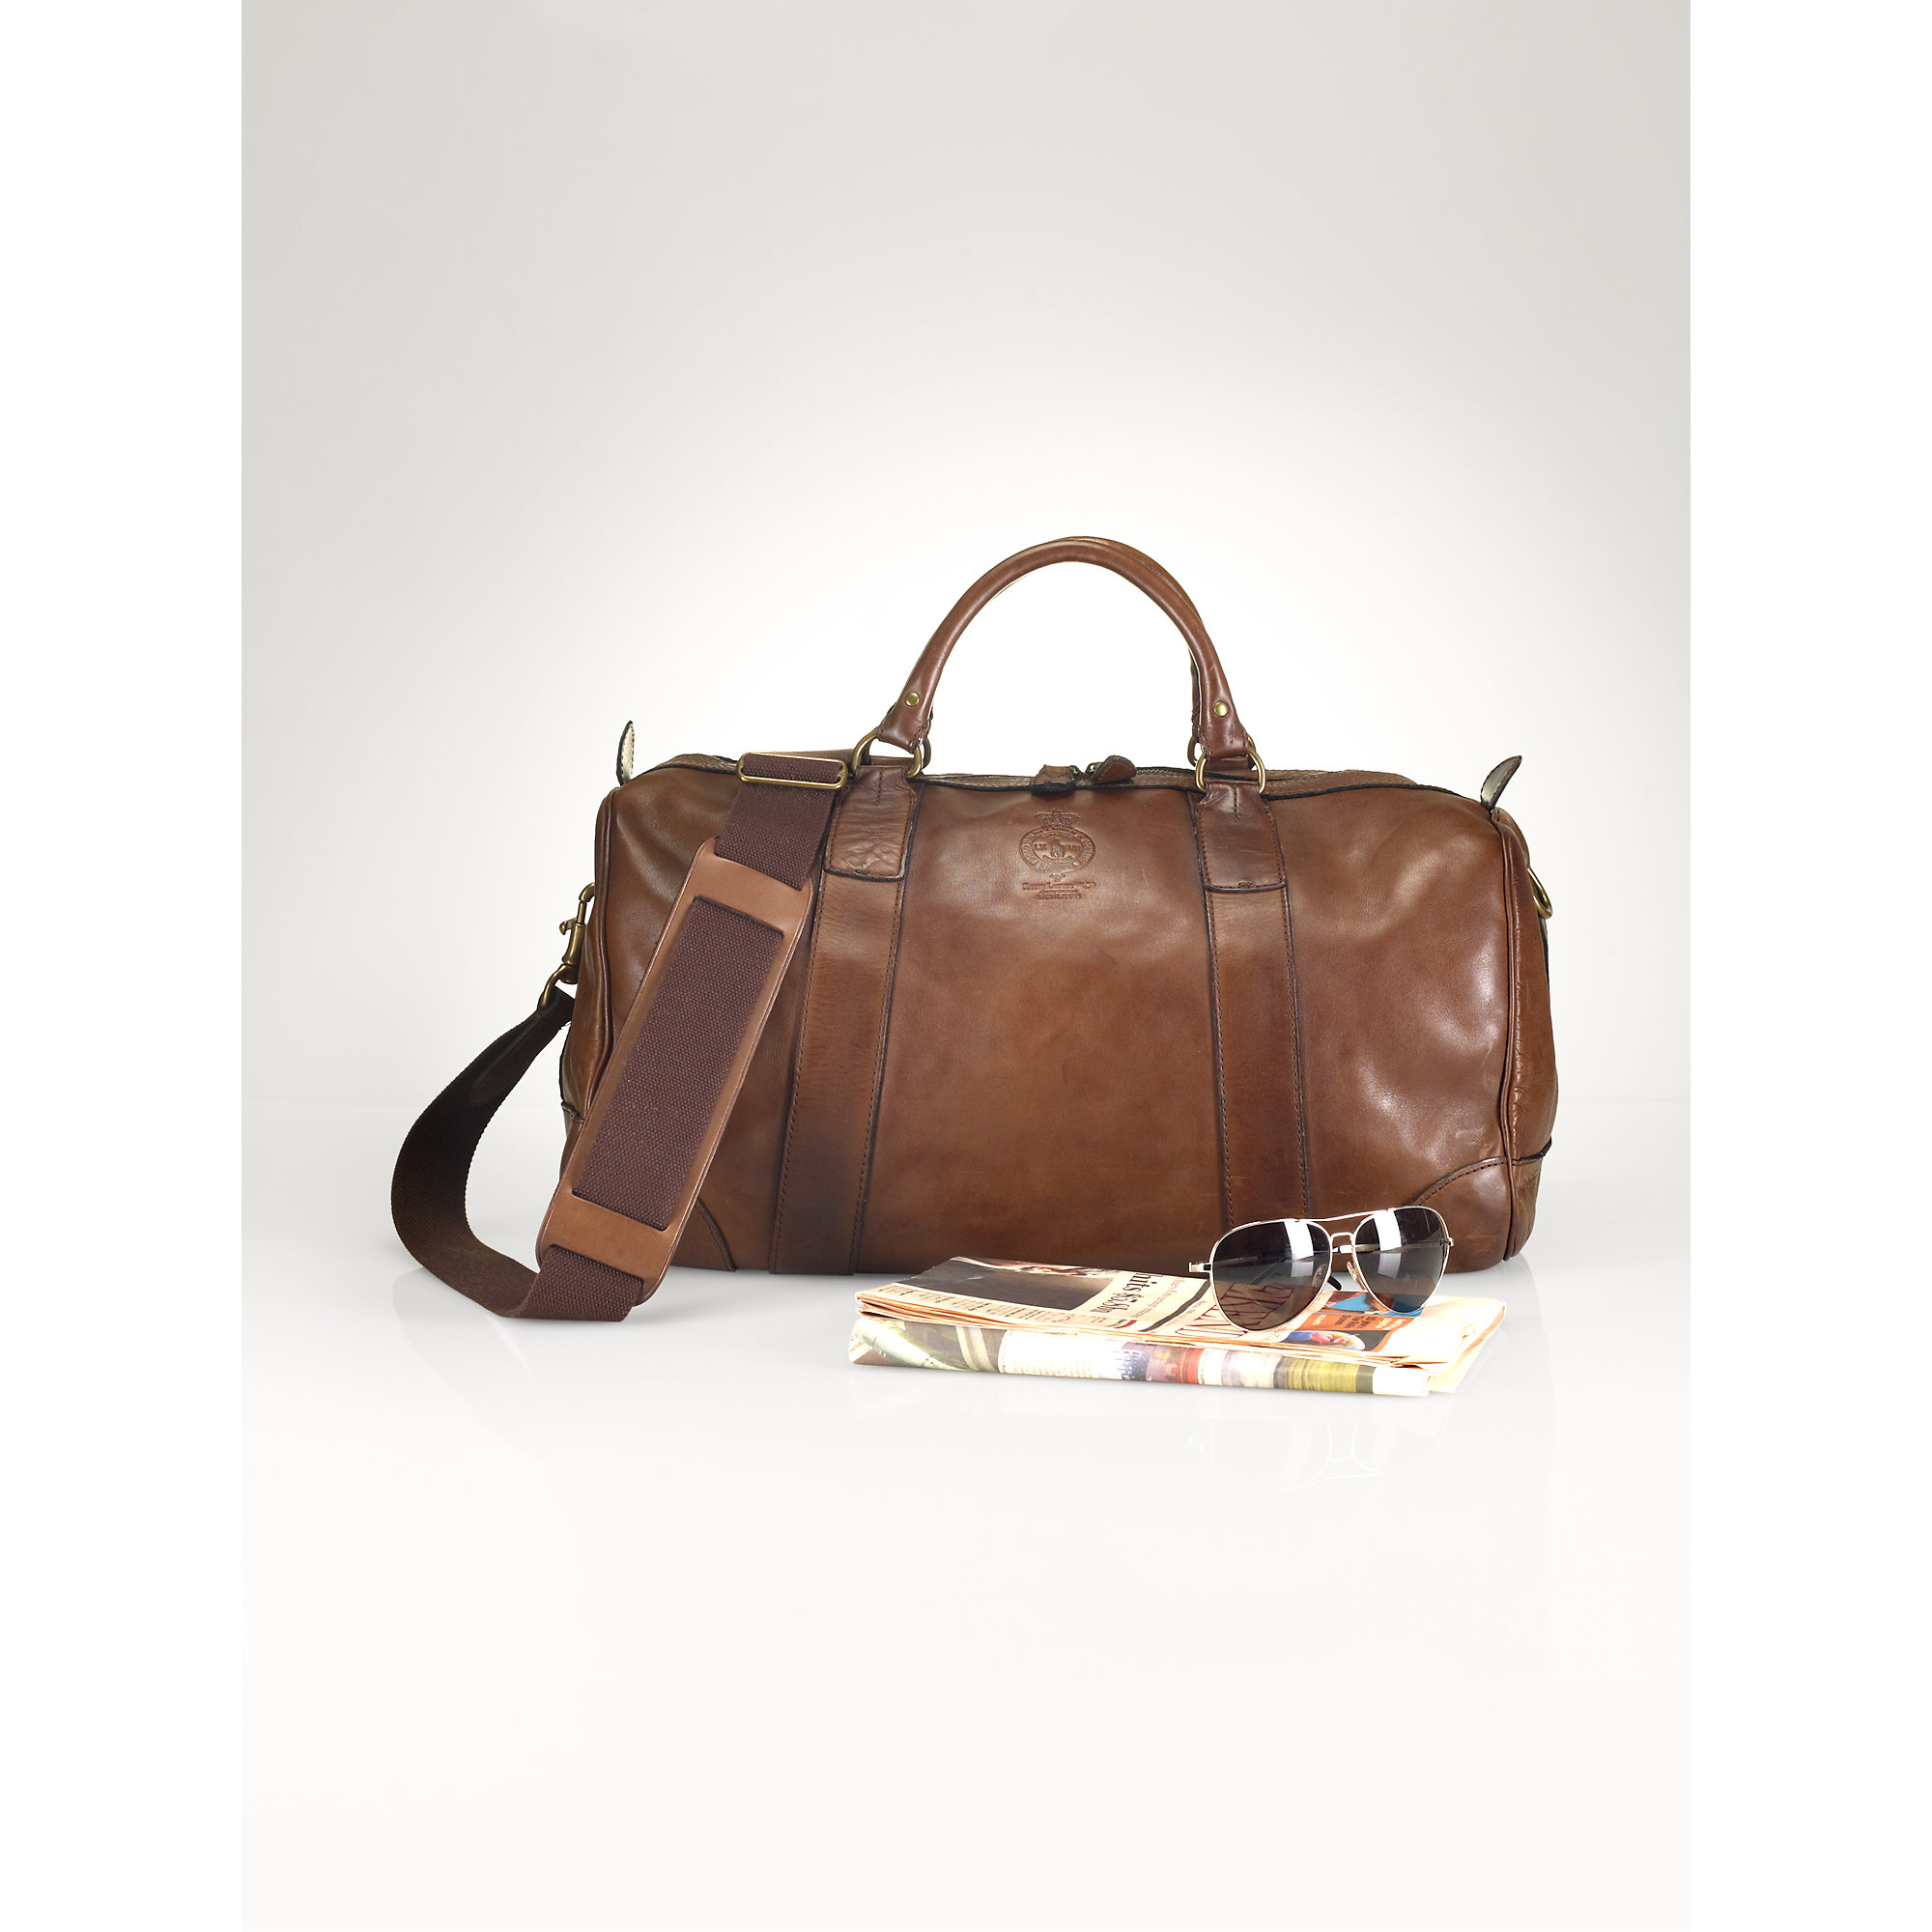 12e45f5cdd0 Lyst - Polo Ralph Lauren Leather Duffel Bag in Brown for Men